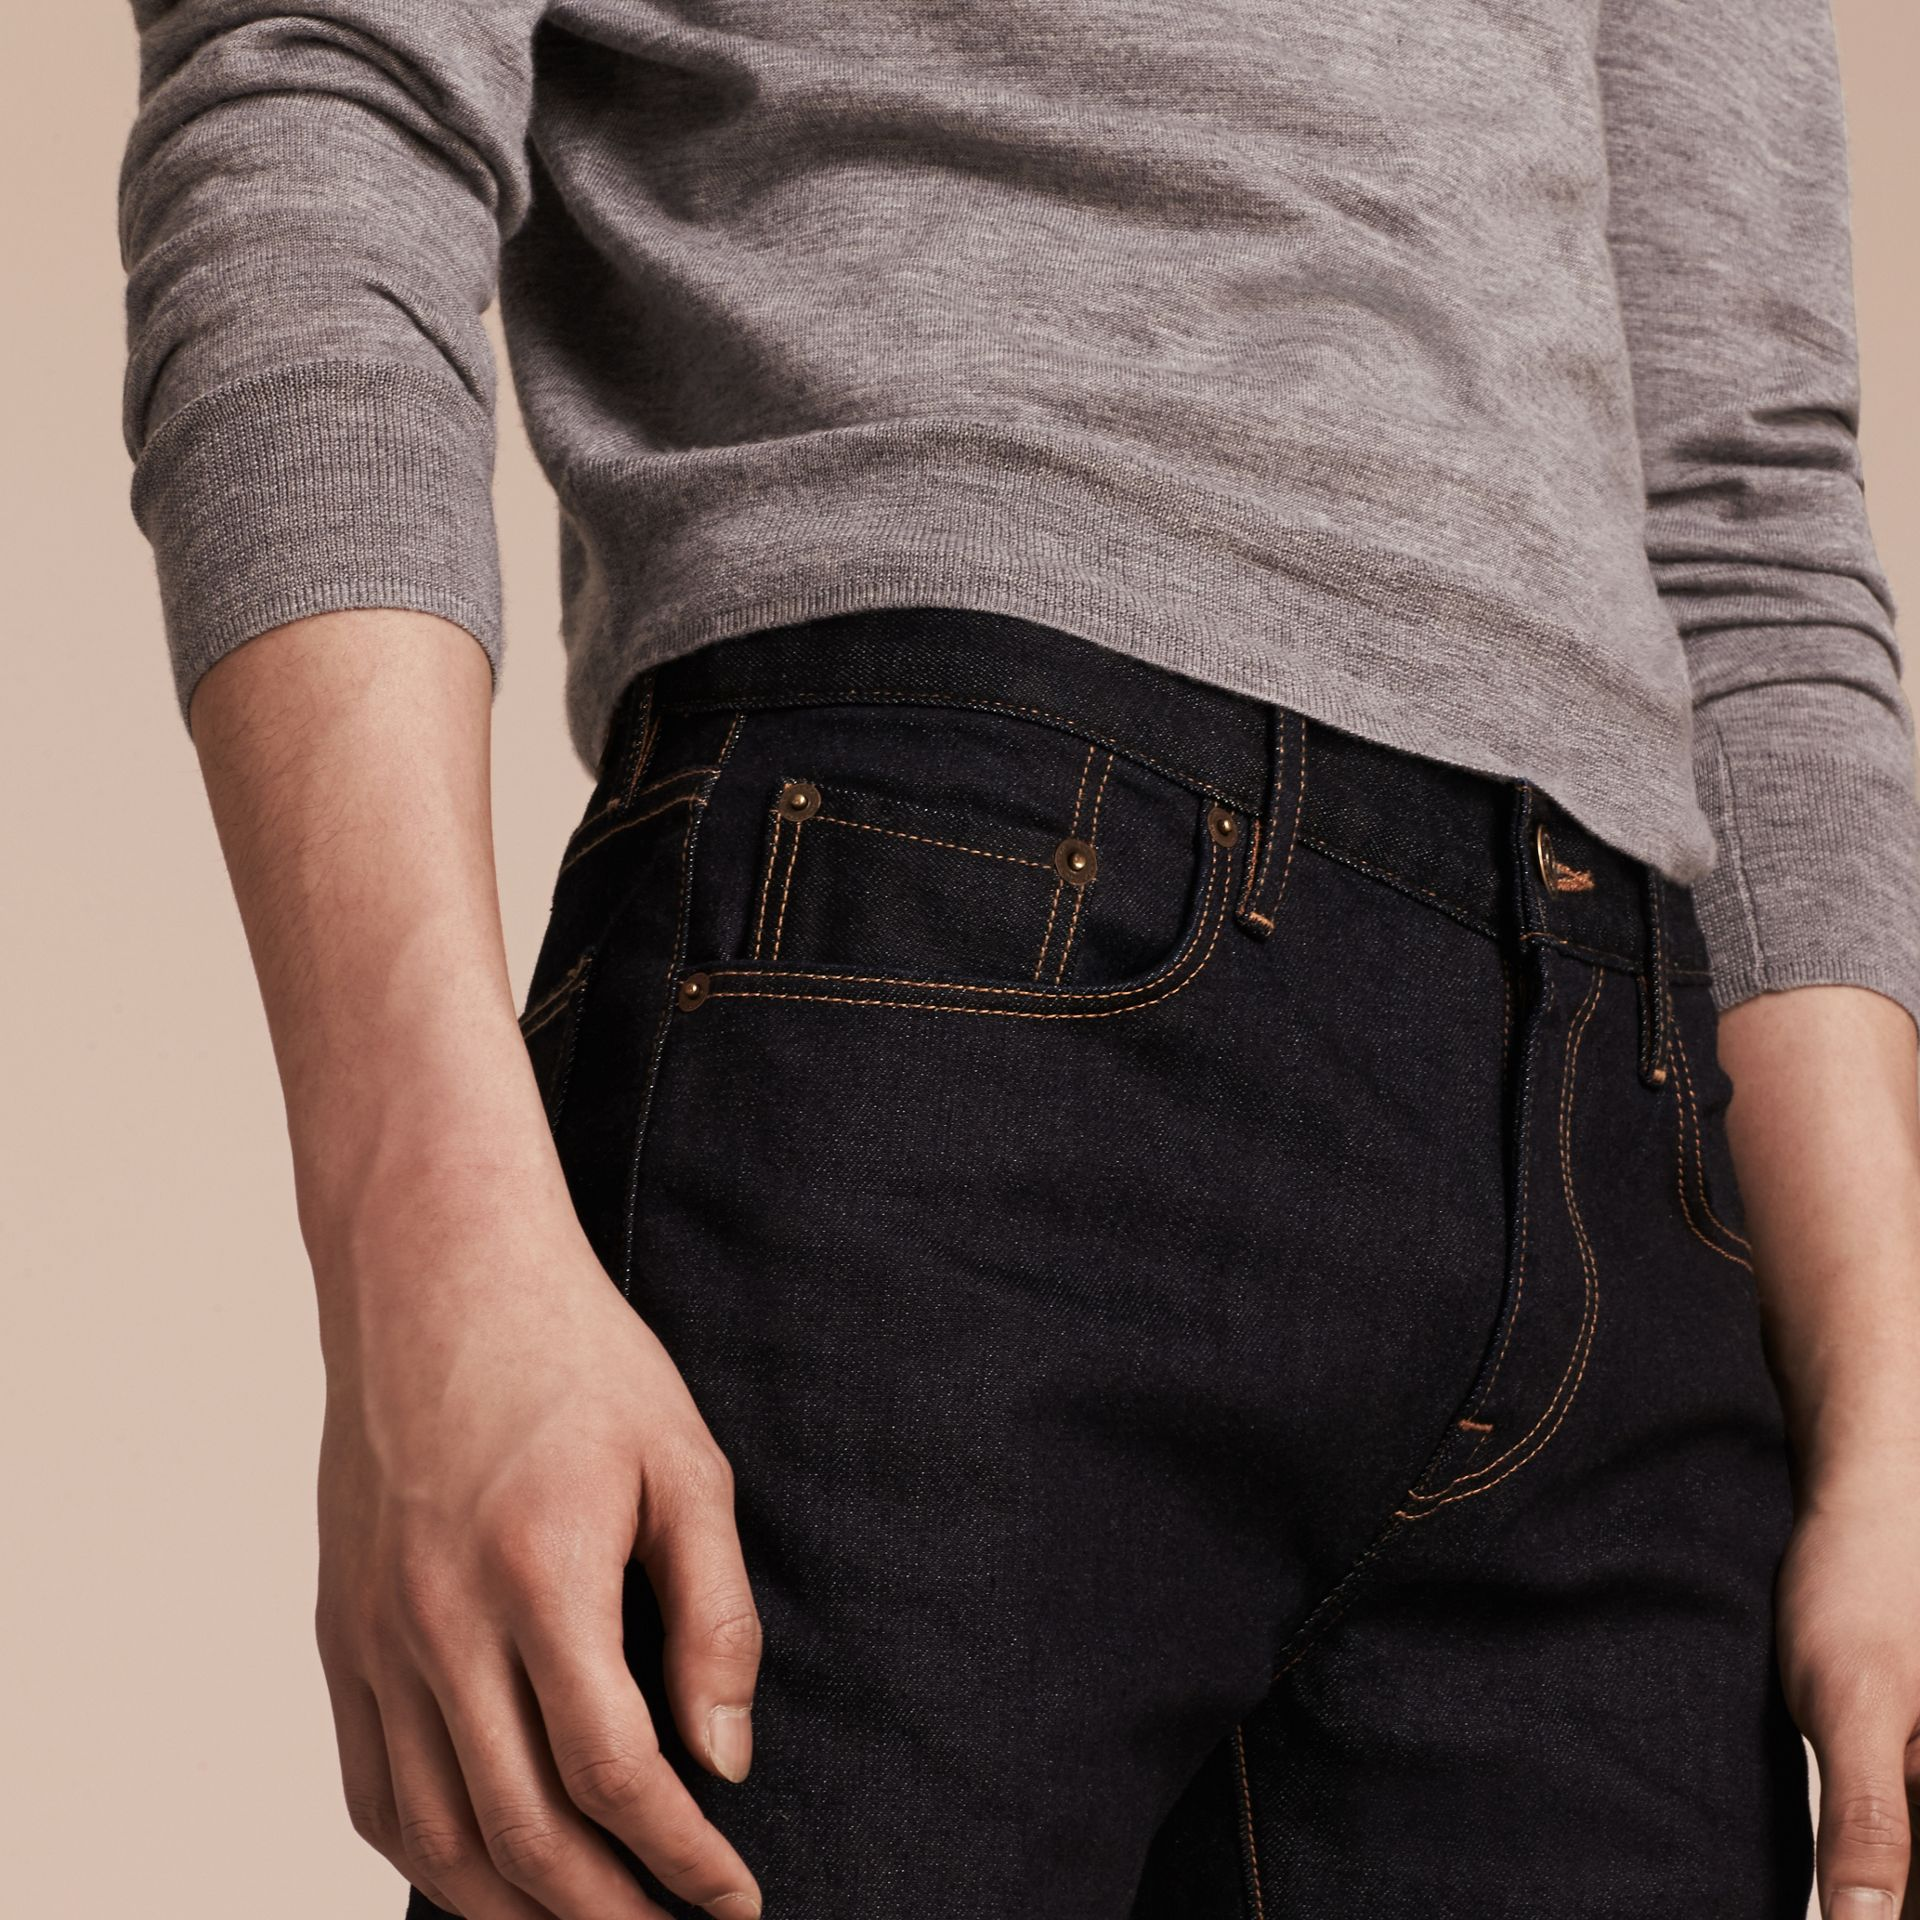 Indigo sombre Jean slim en denim selvedge japonais extensible - photo de la galerie 5